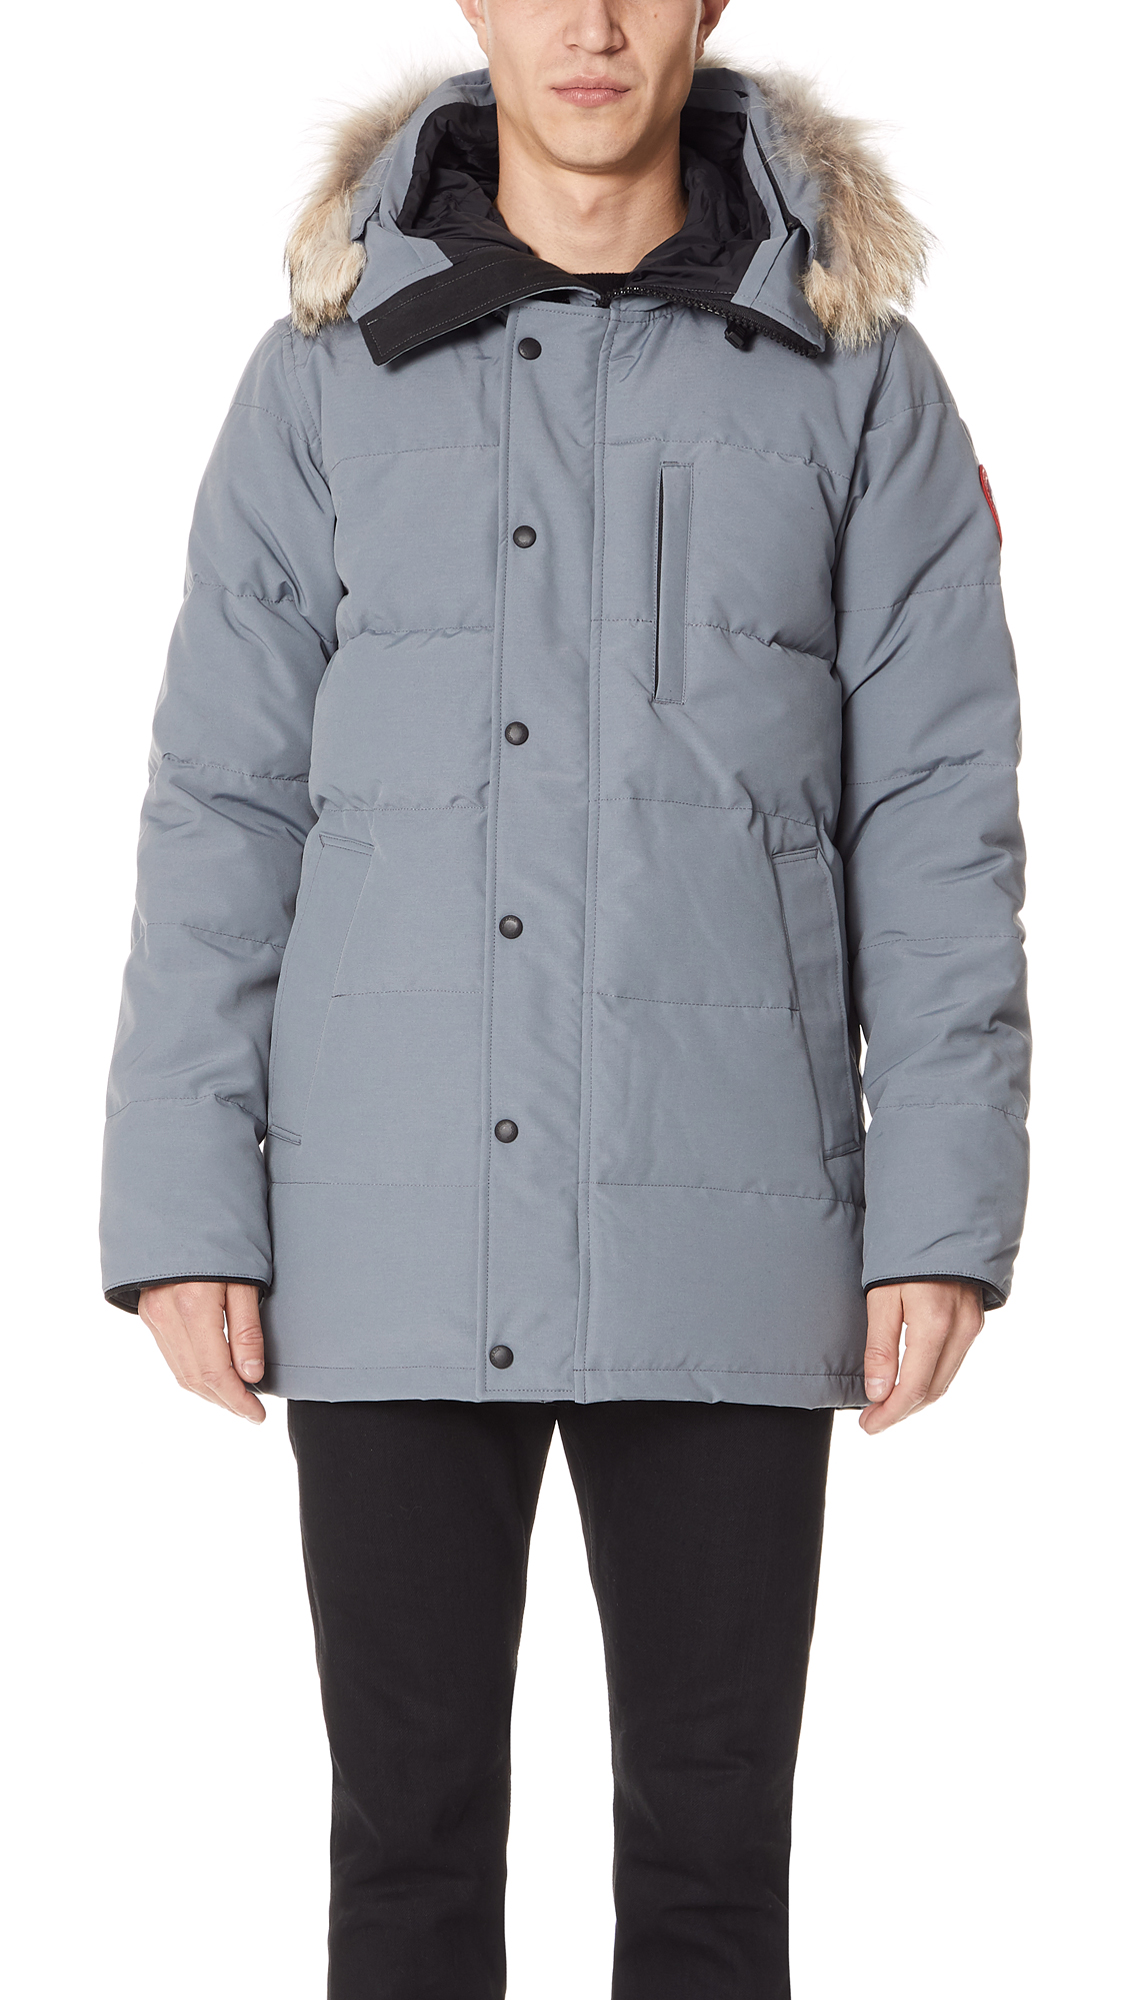 canada goose View all Outerwear BEIGE